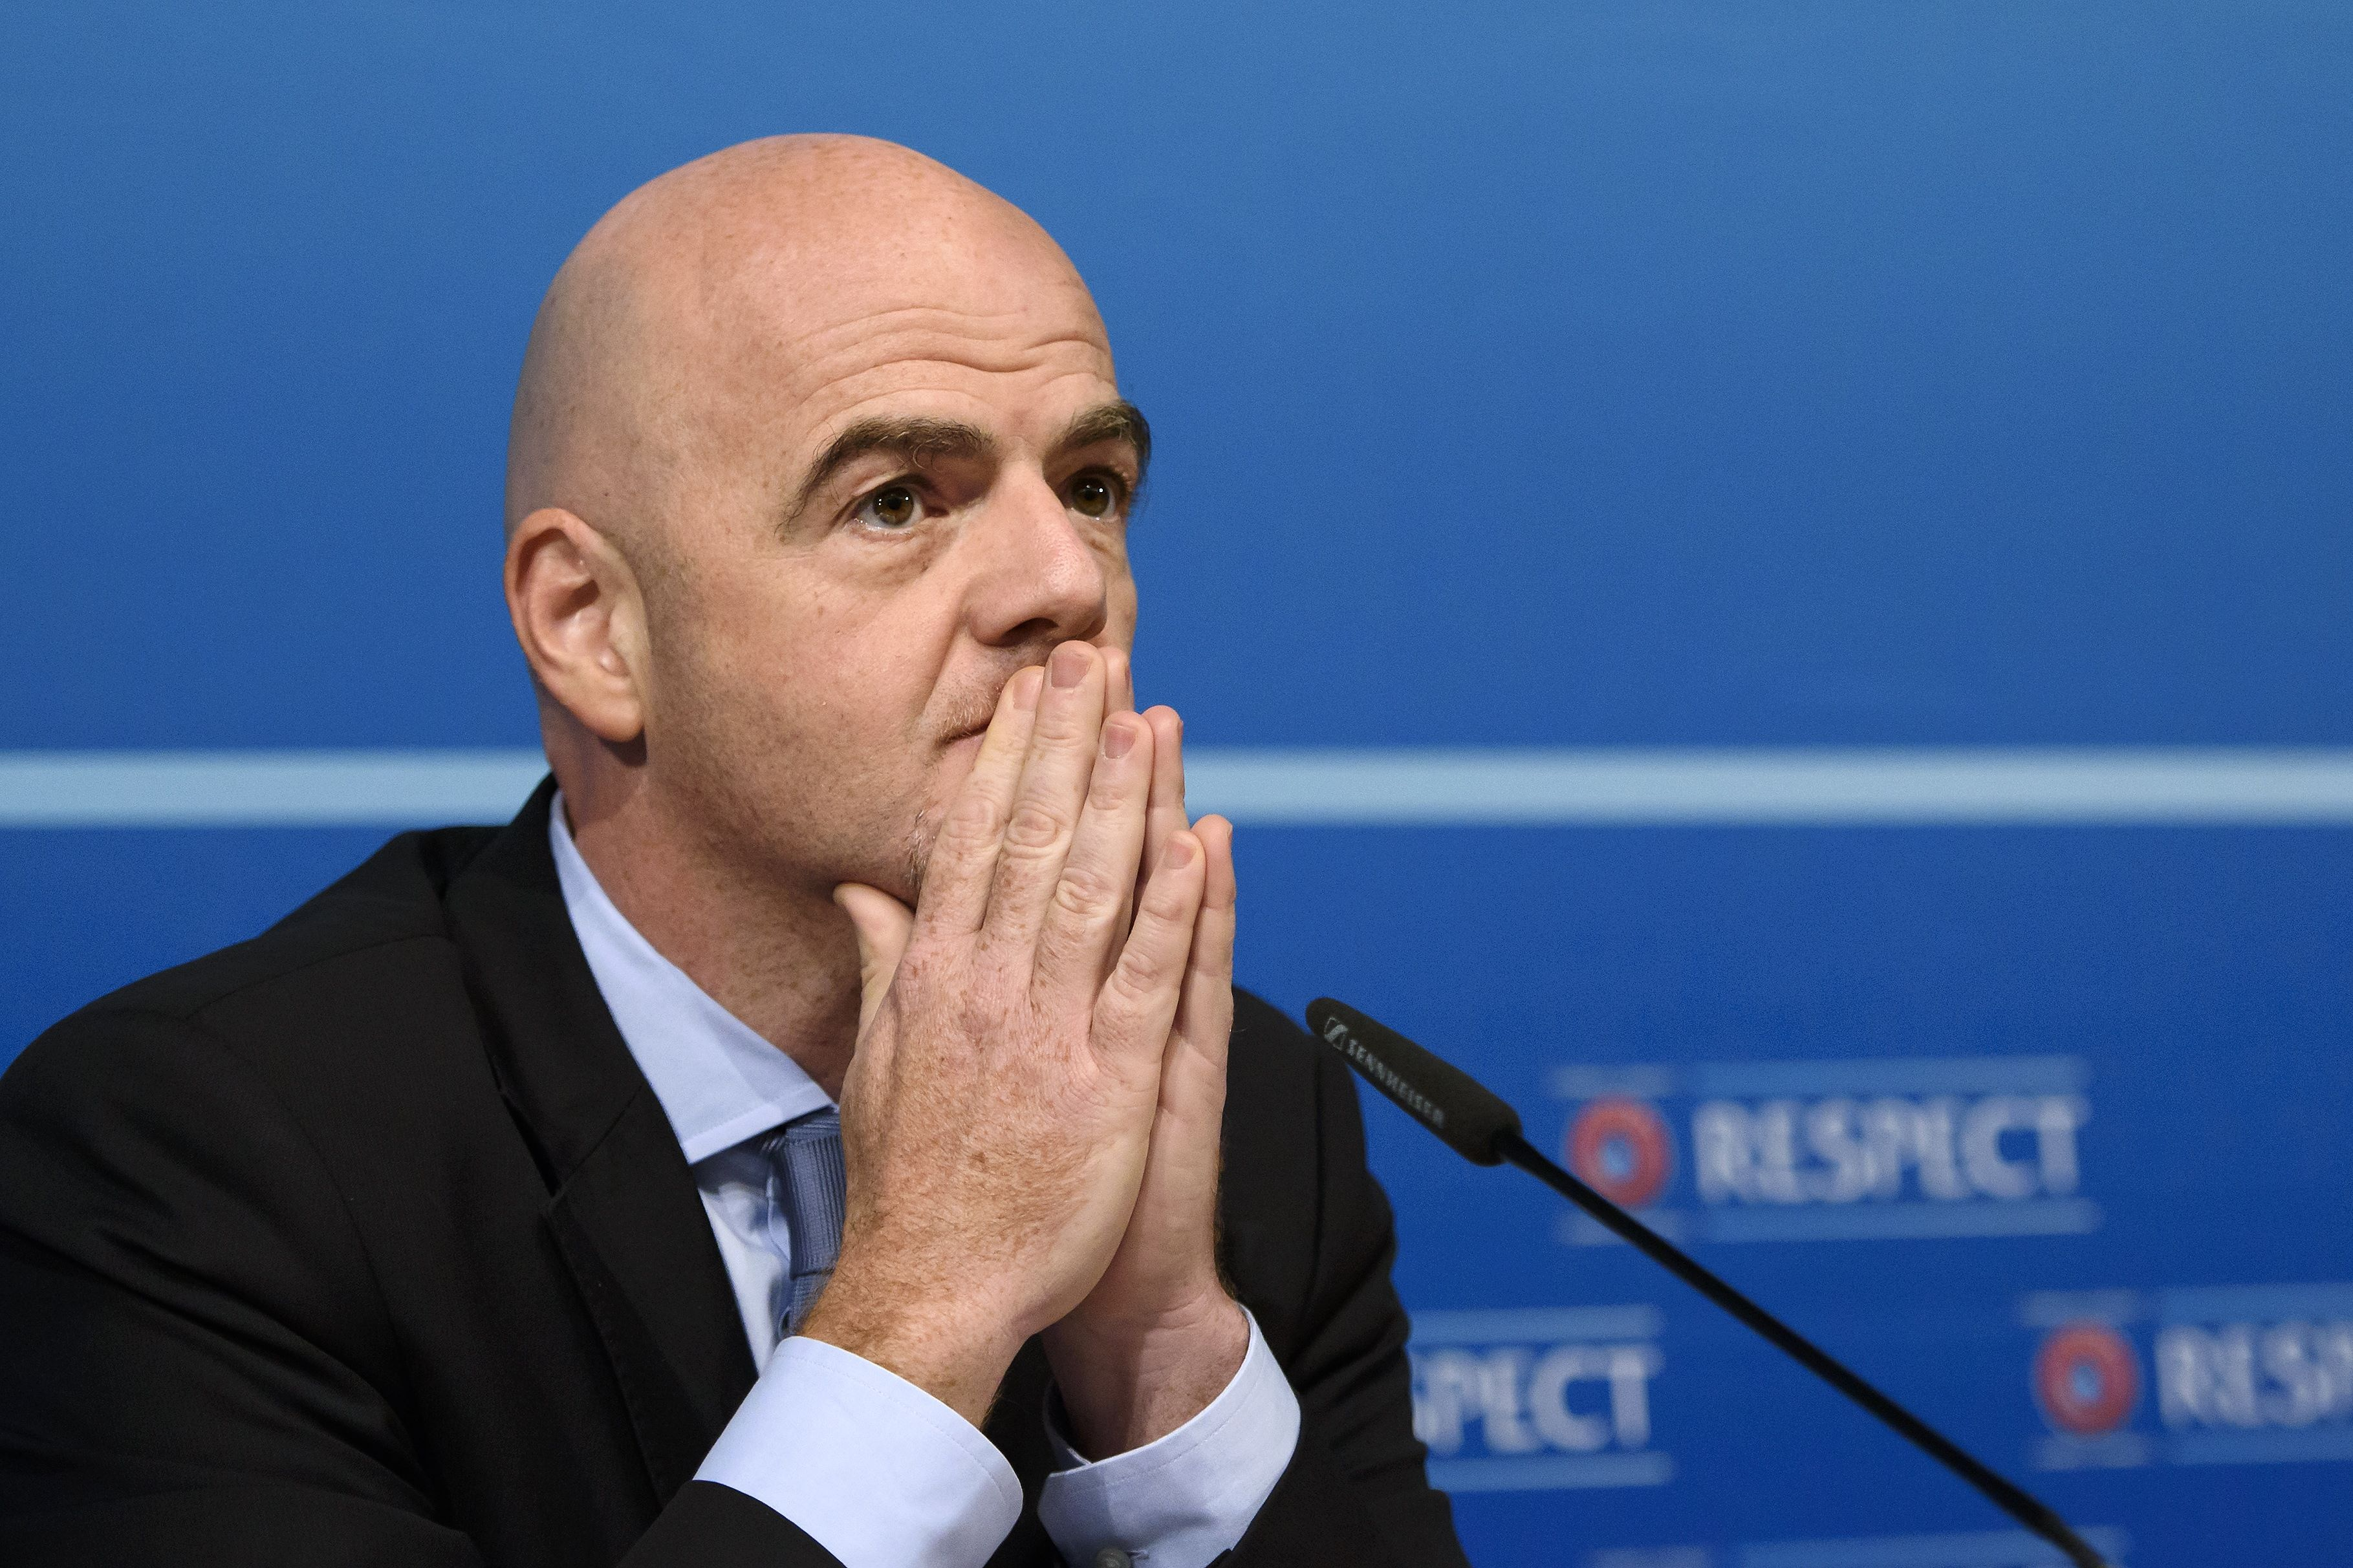 Gianni Infantino Wallpapers HQ